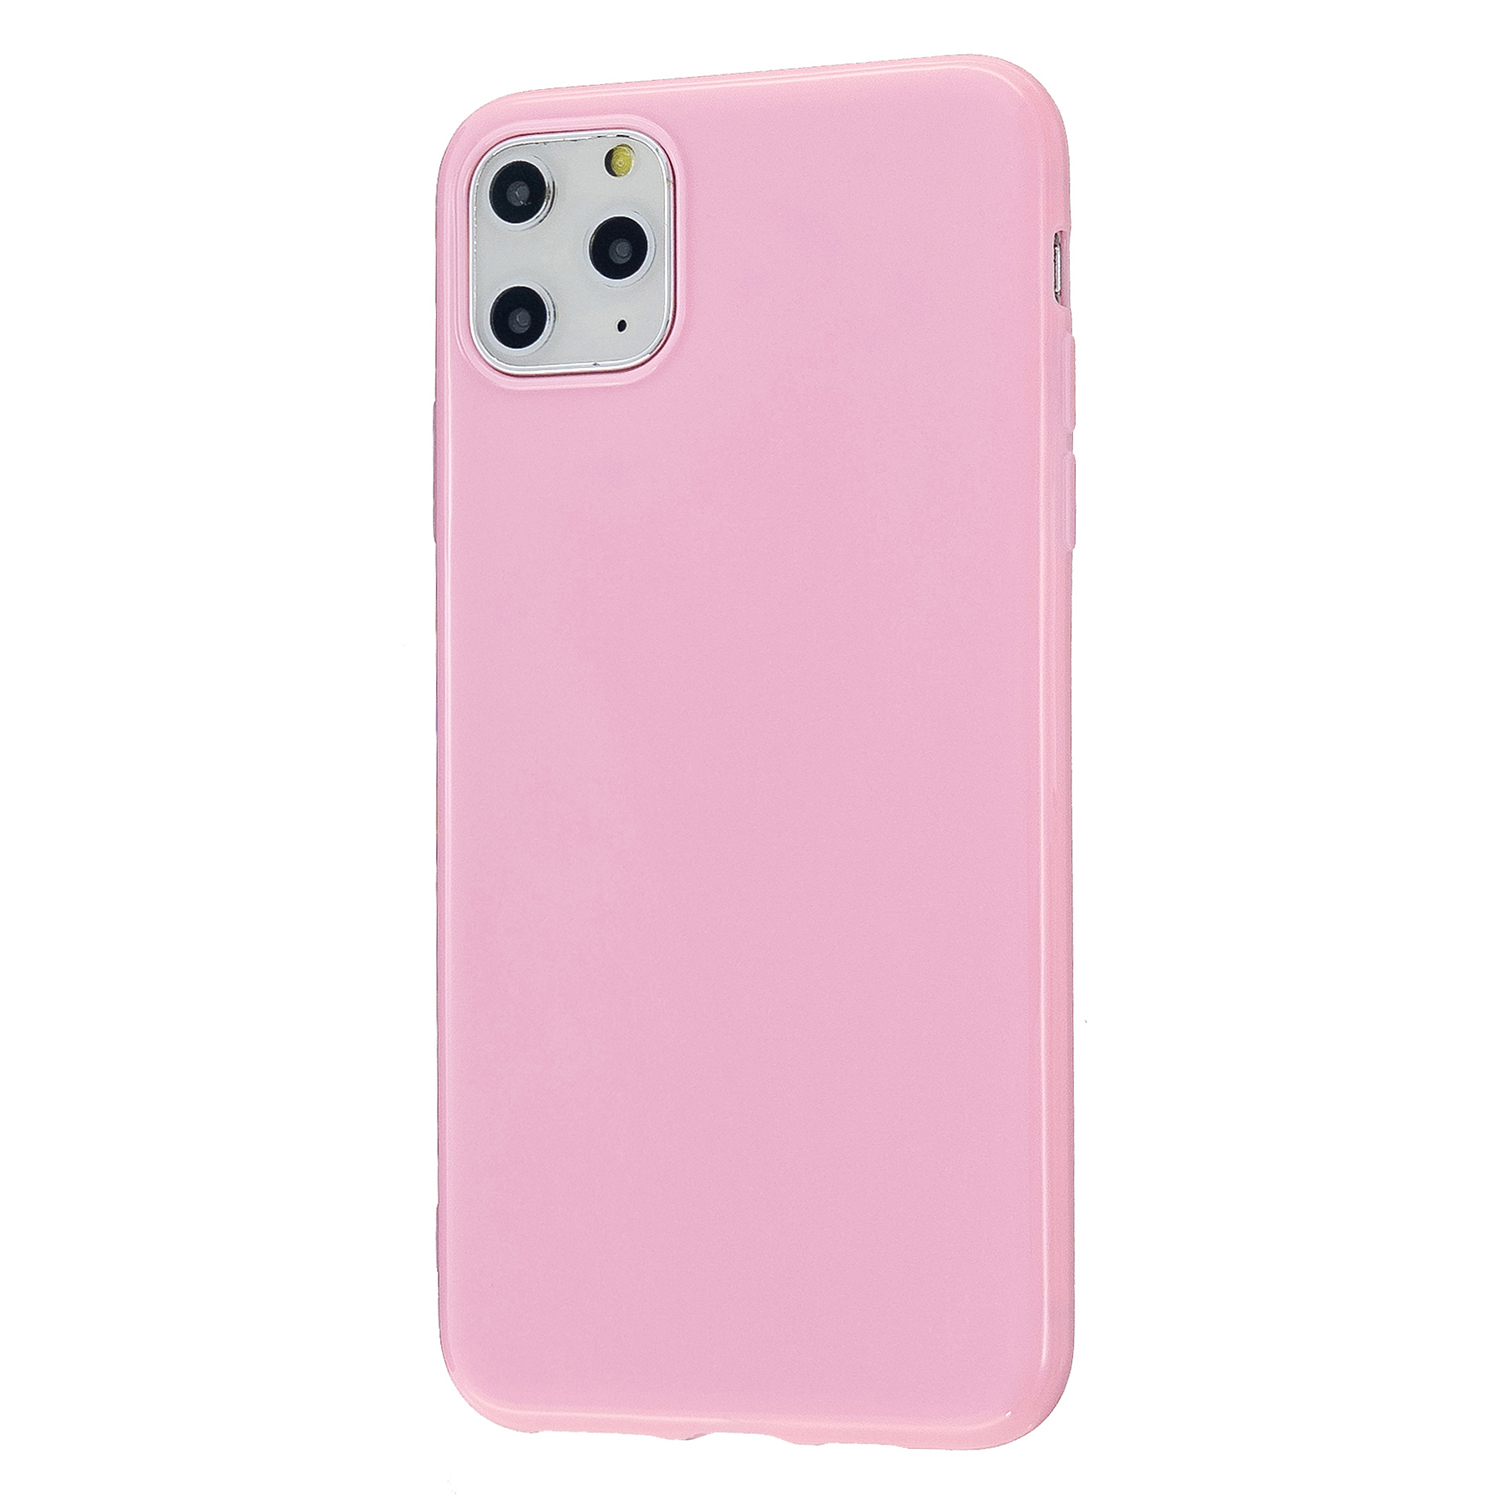 For iPhone 11/11 Pro/11 Pro Max Smartphone Cover Slim Fit Glossy TPU Phone Case Full Body Protection Shell Rose pink